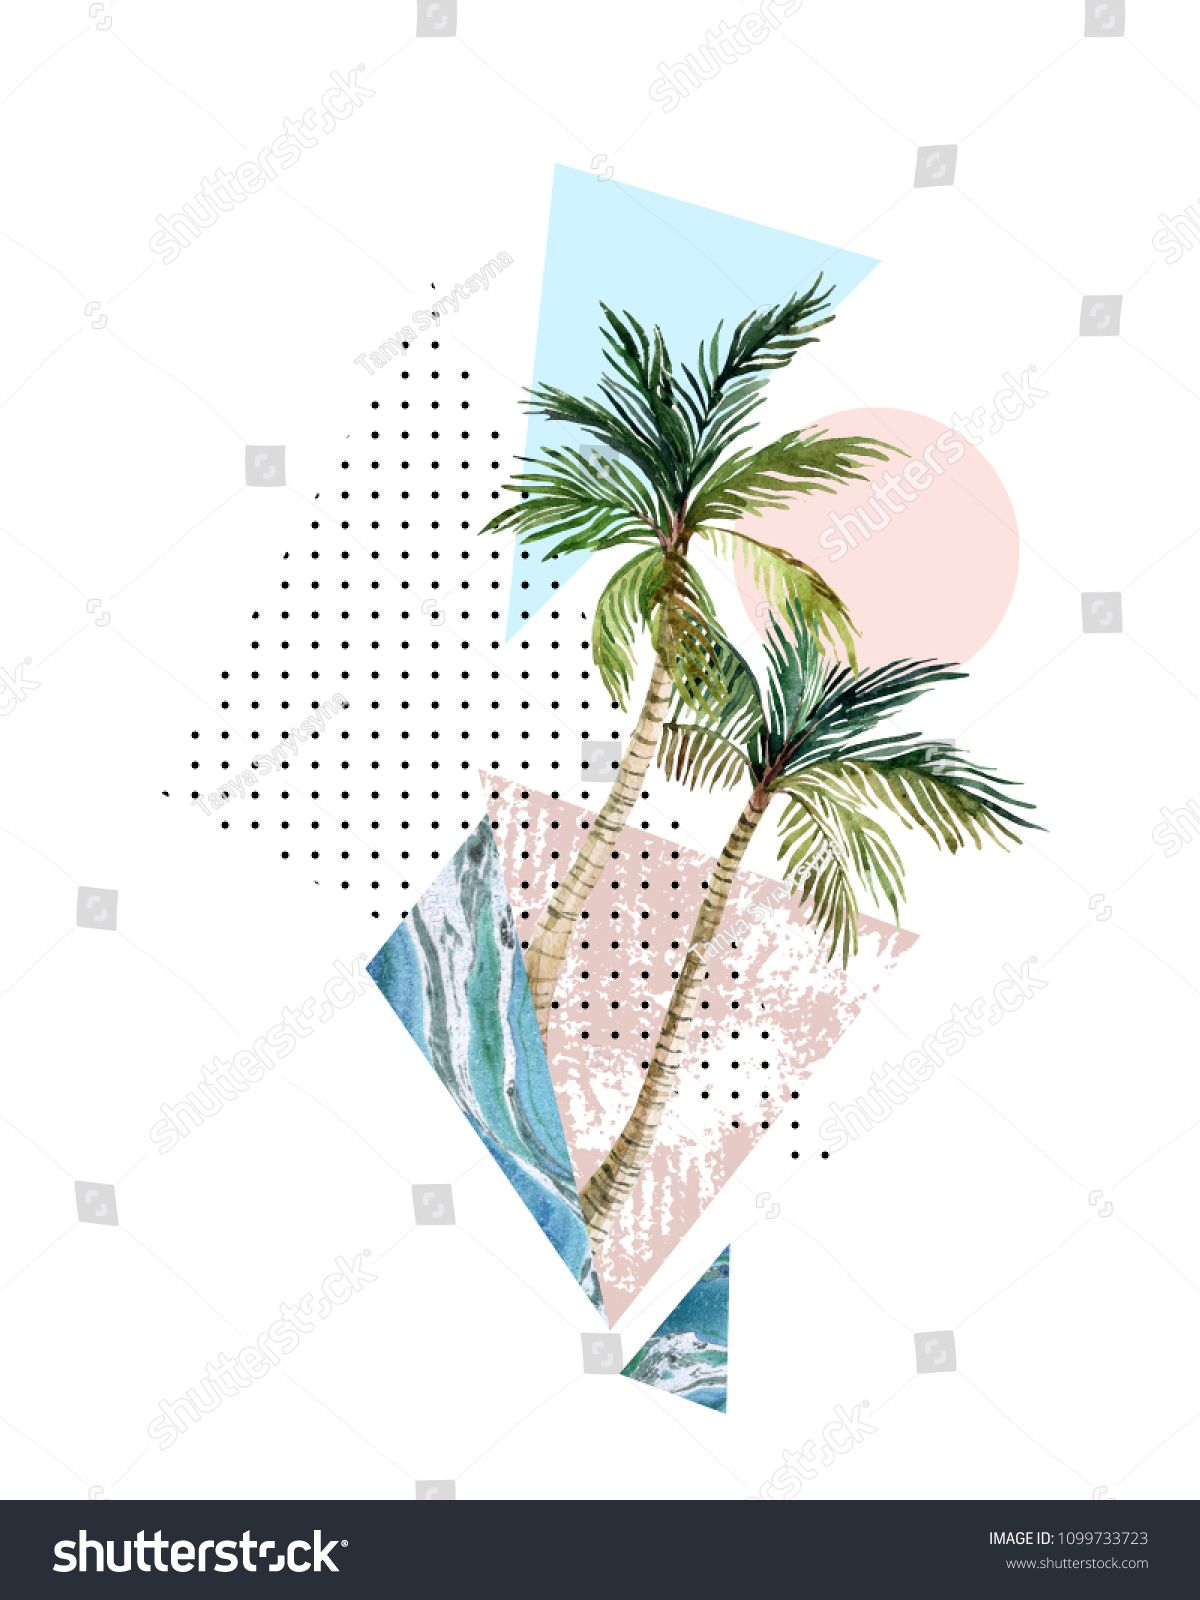 Abstract Summer Background Triangle Circle Watercolor Palm Tree